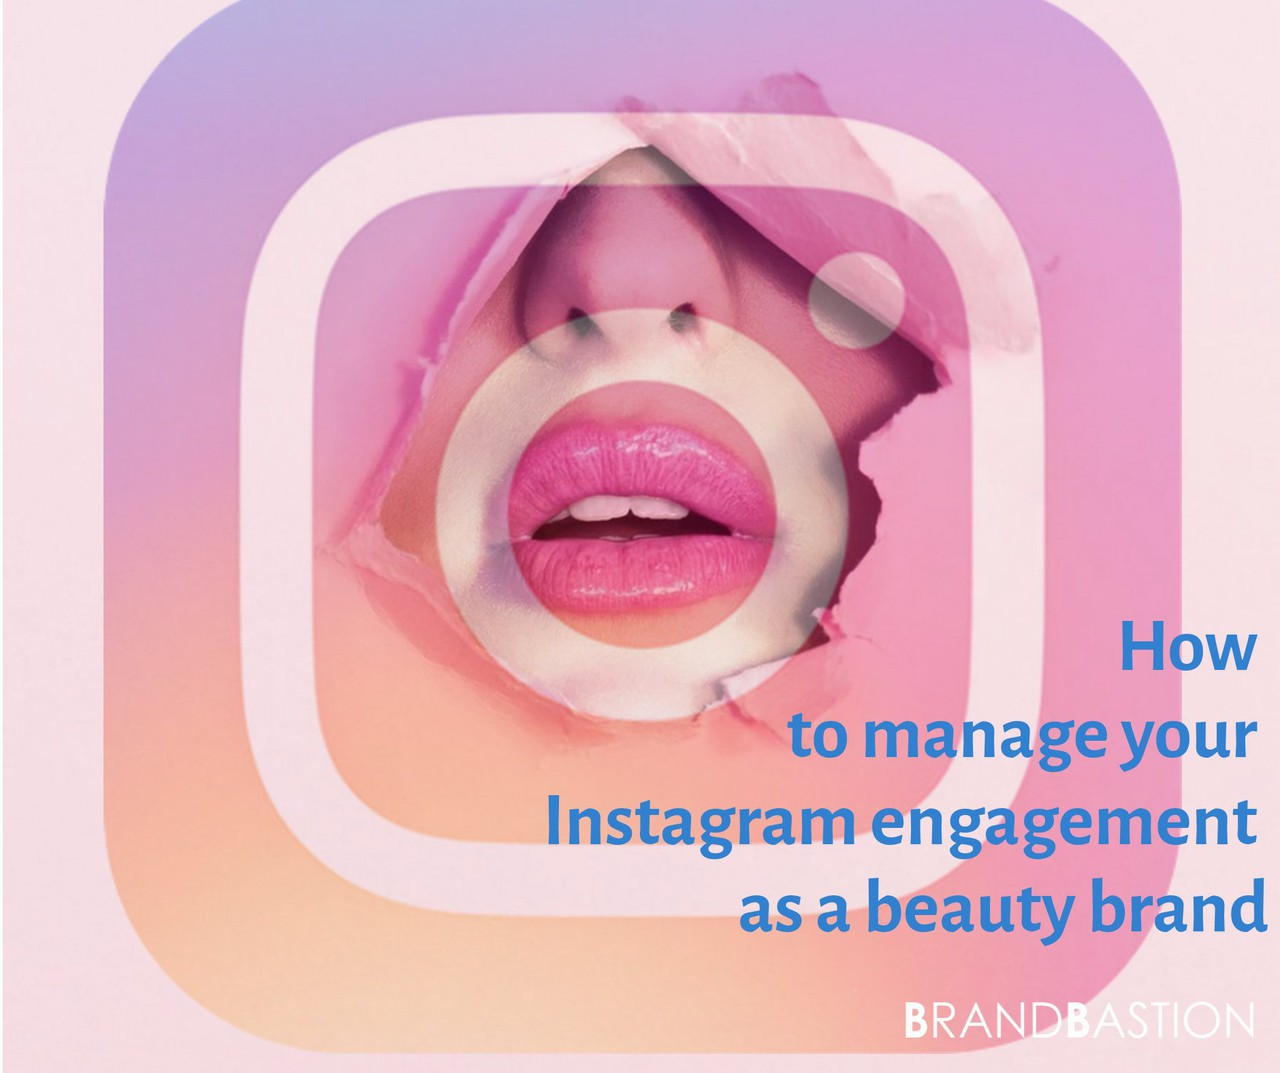 How to manage your Instagram engagement as a beauty brand